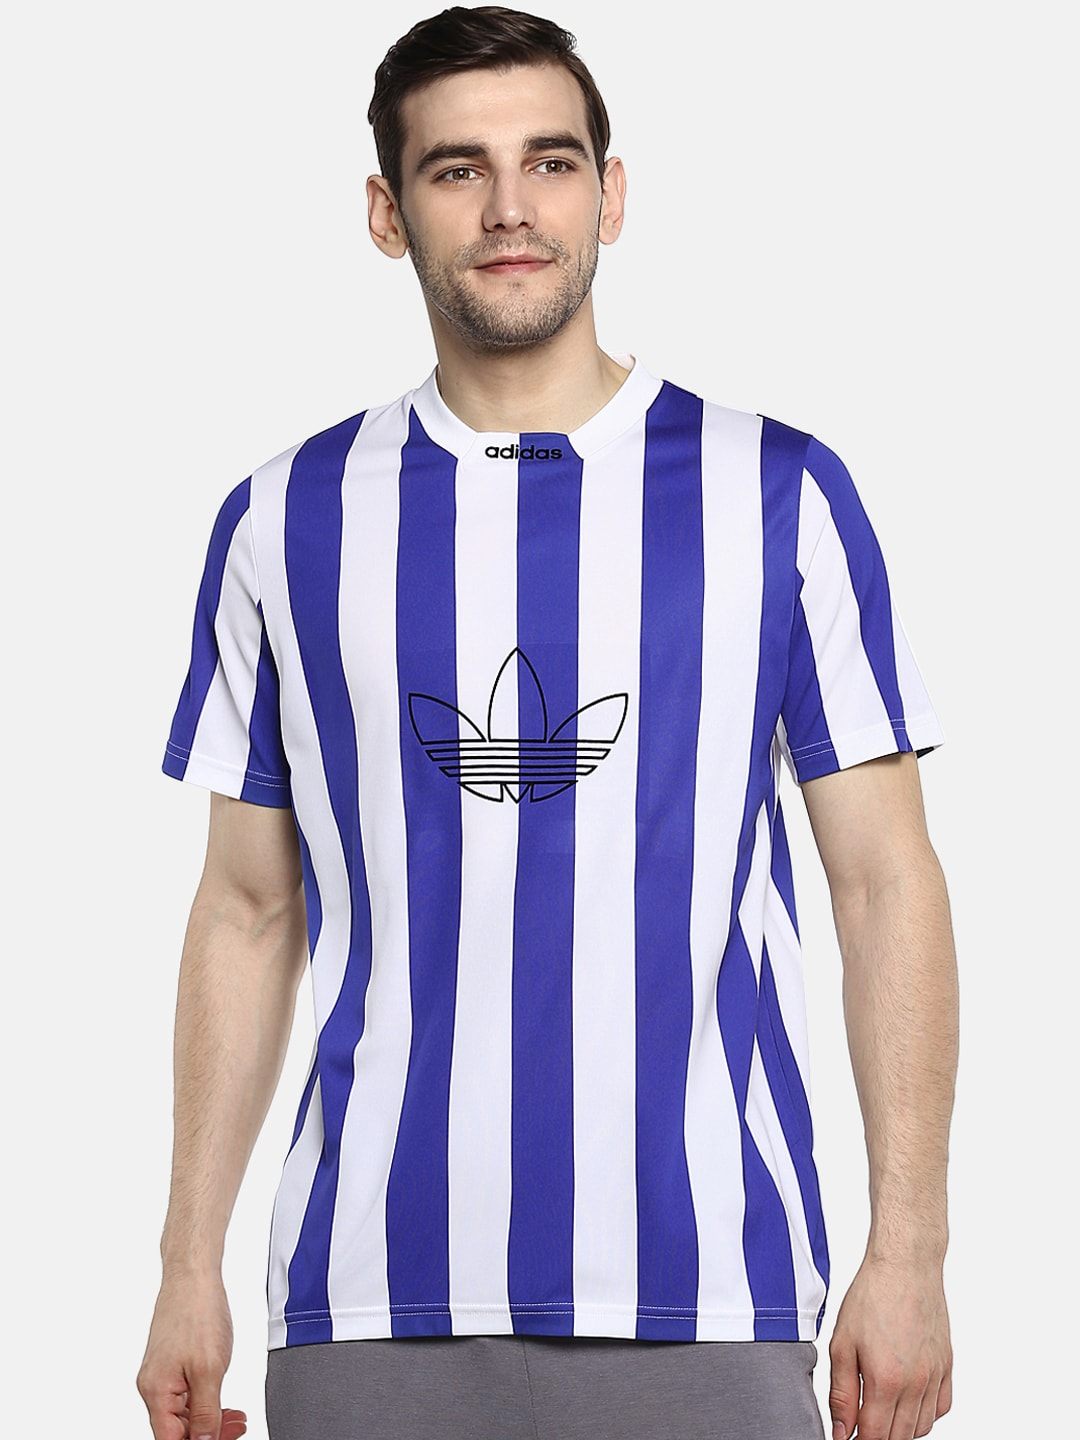 be8f22f2e Adidas Jersey - Buy Adidas Jersey online in India